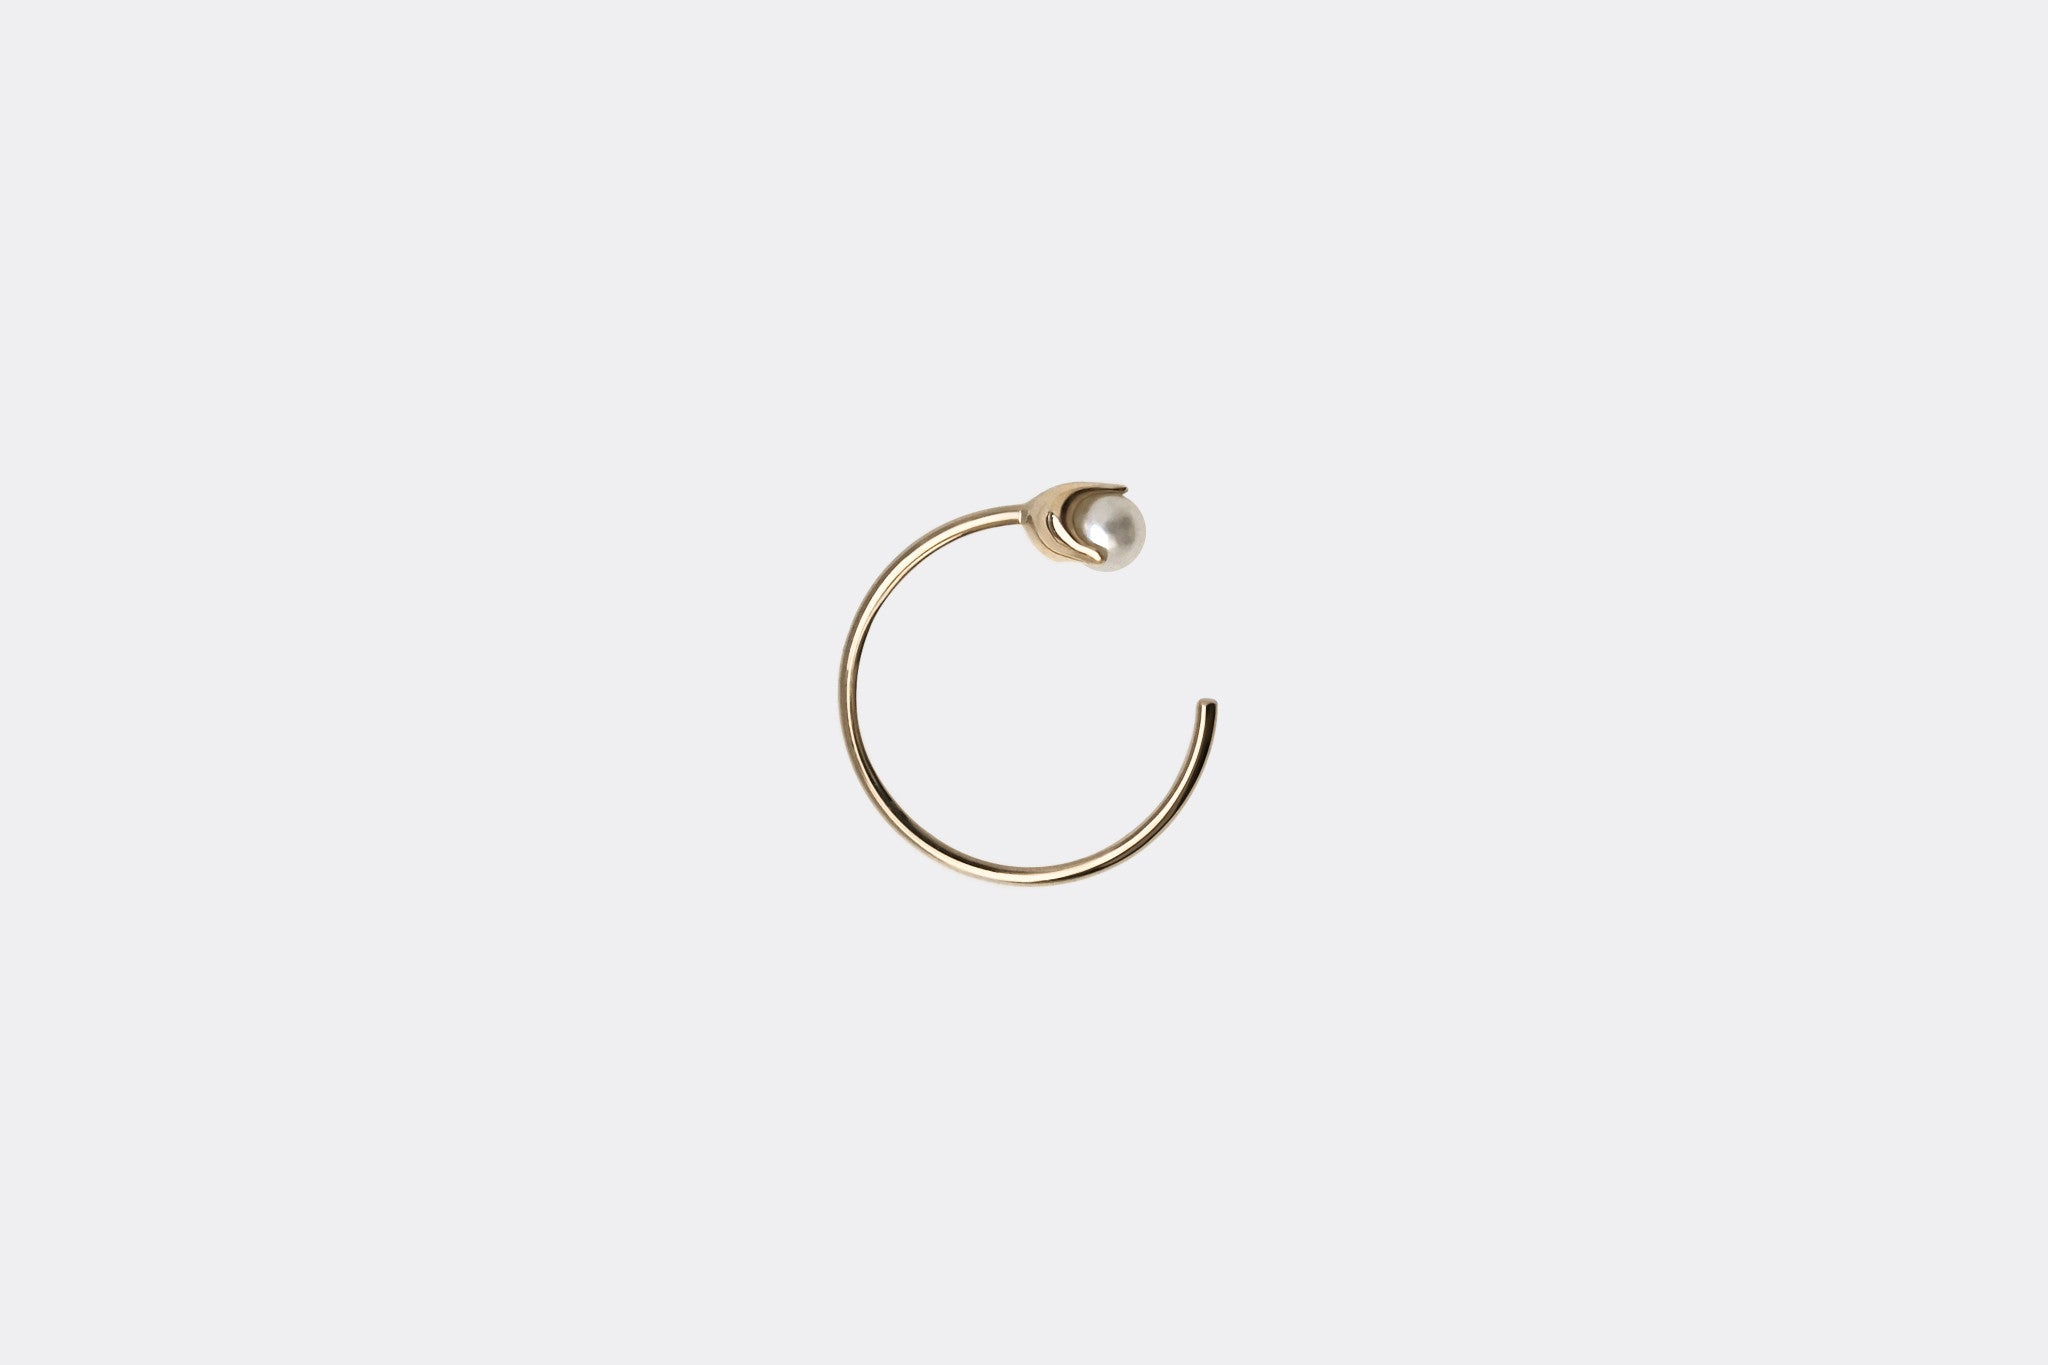 Gold Tiny Pearl Hoop Earrings E2332